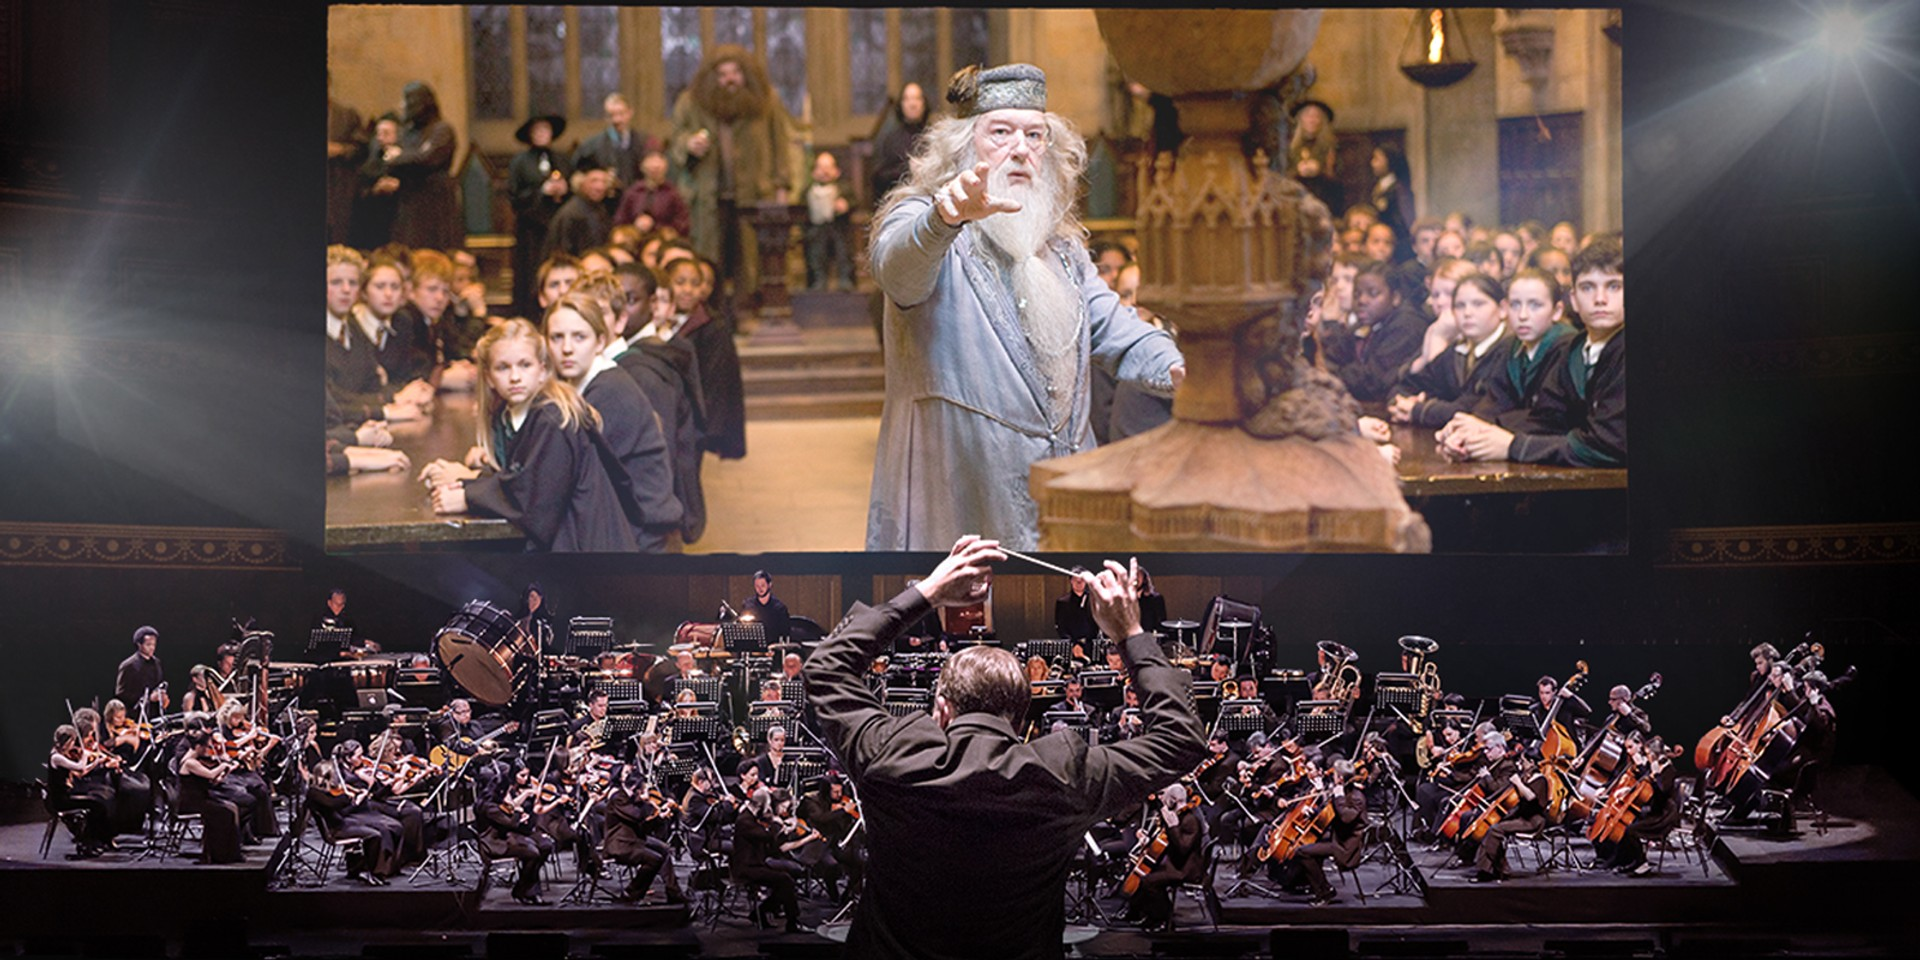 Harry Potter and the Prisoner of Azkaban gets the concert treatment in Singapore